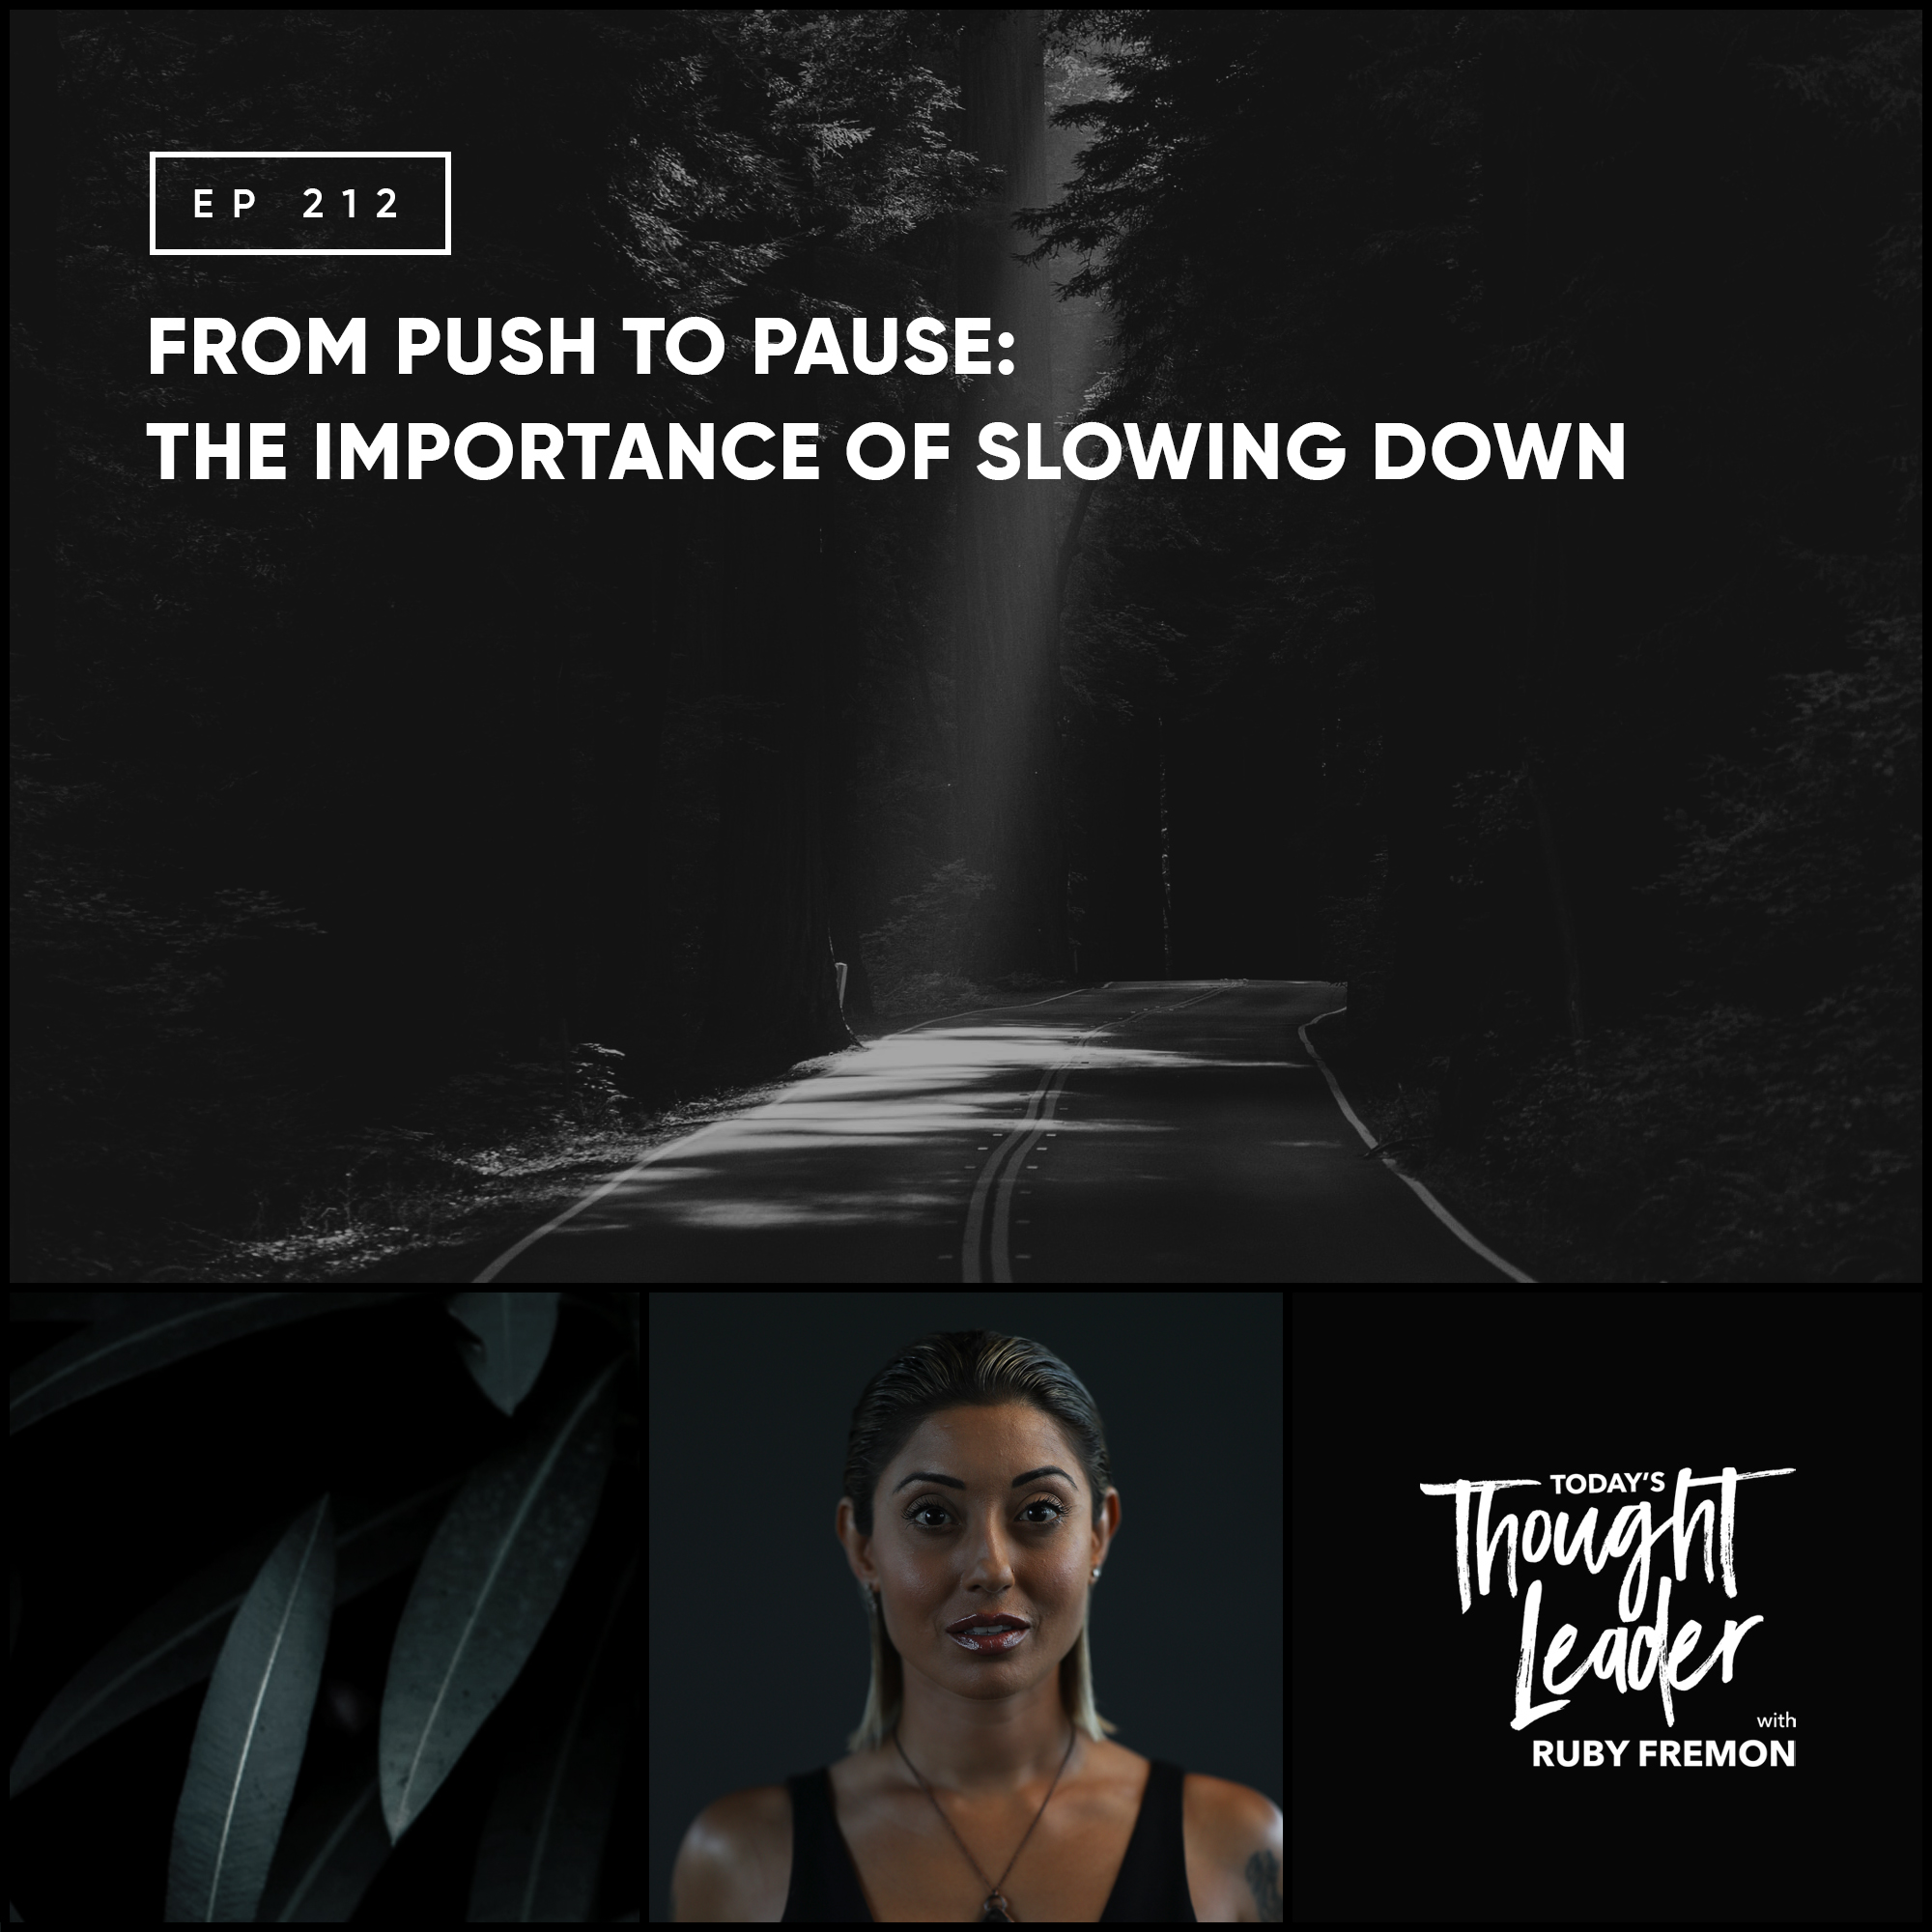 212: From Push to Pause: The Importance of Slowing Down